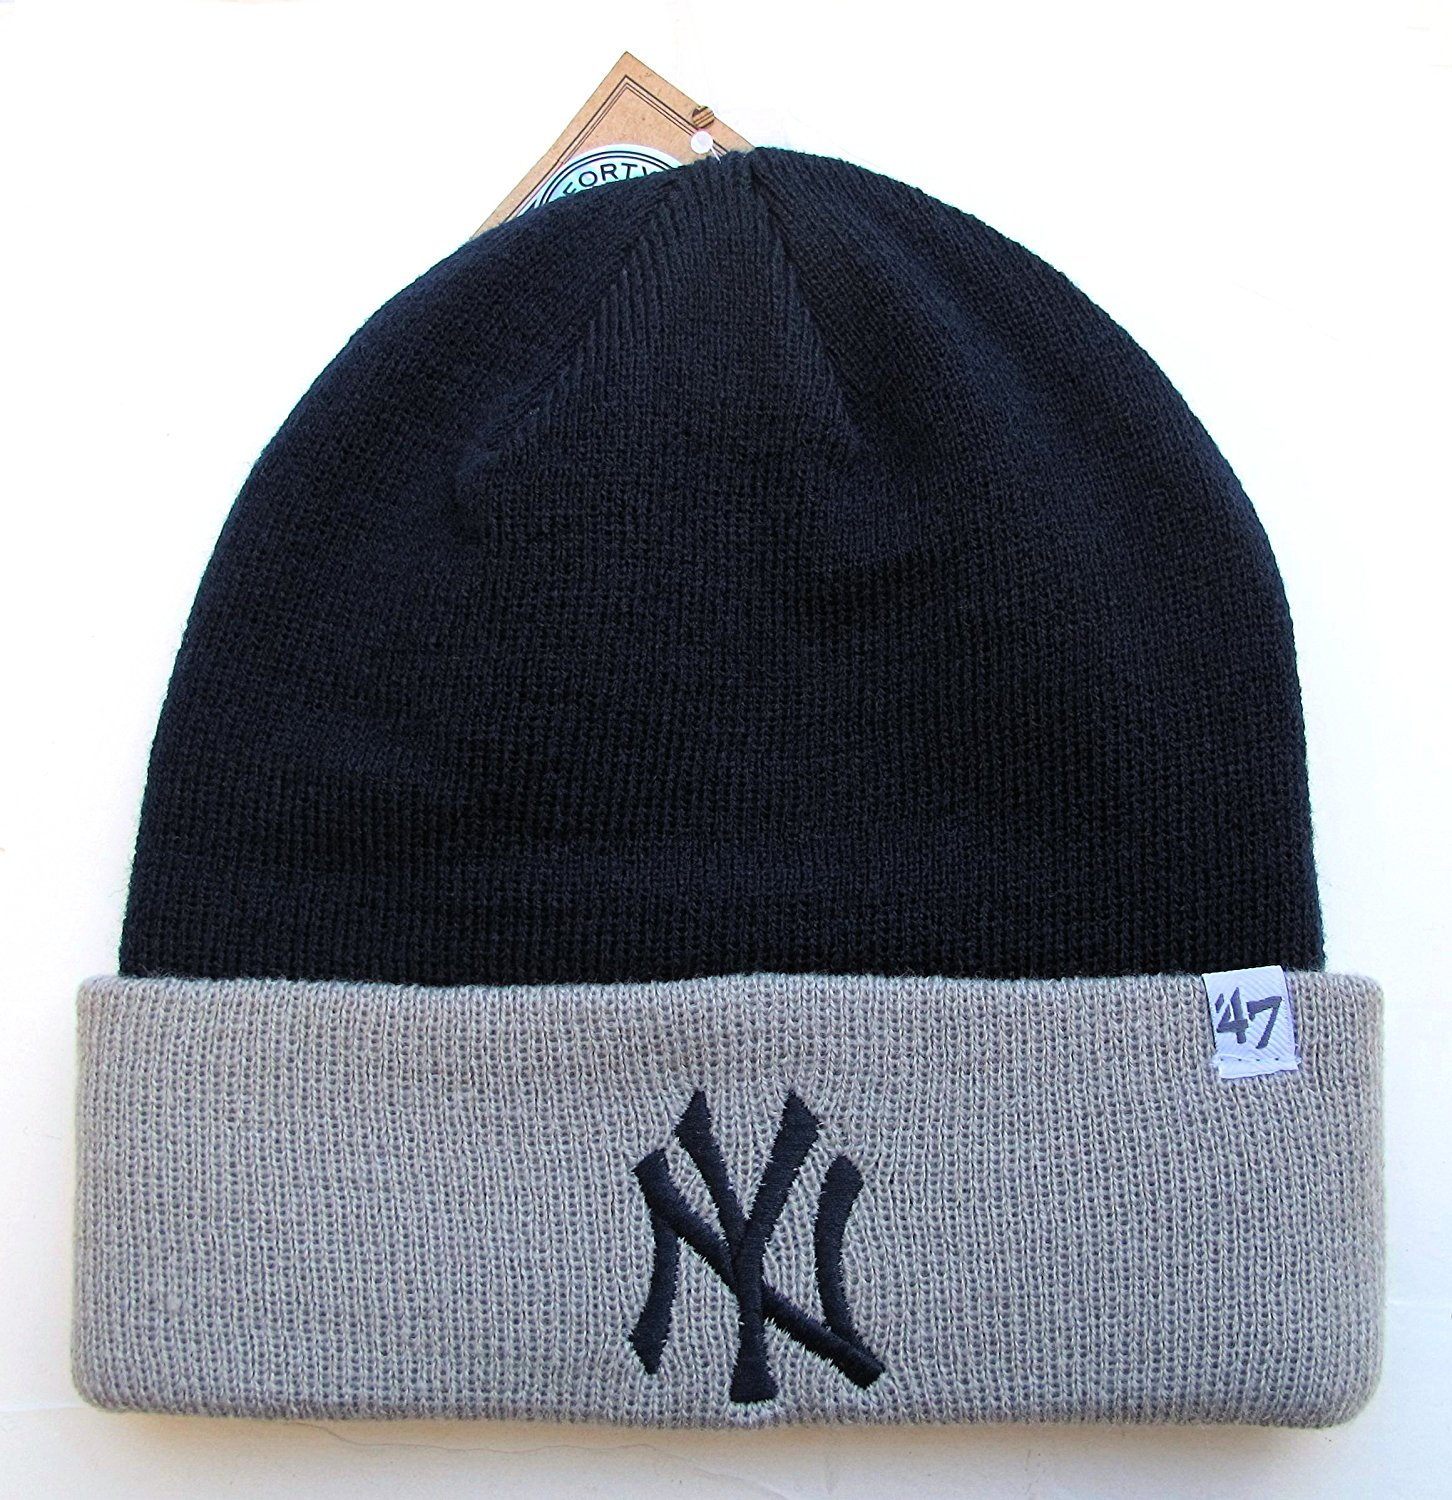 d8aa5eafbd3 Get Quotations · MLB New York Yankees 2 Tone Dark Blue